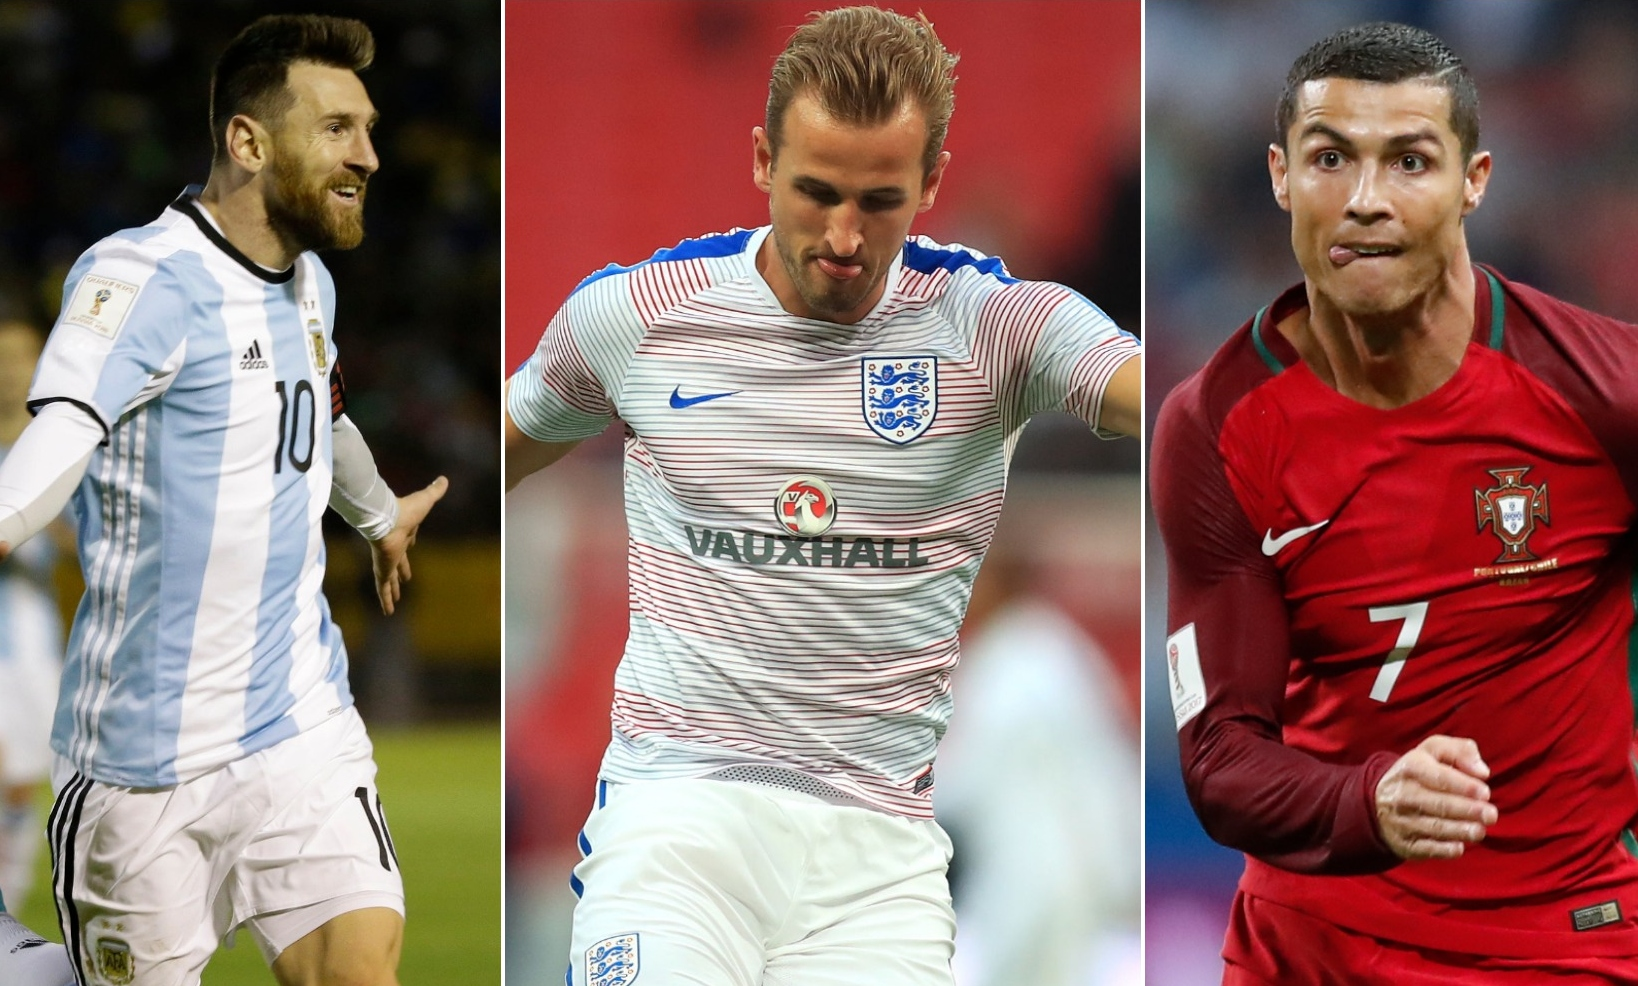 Argentina's Lionel Messi, England captain Harry Kane, and Portugal's Cristiano Ronaldo are all on show at World Cup 2018